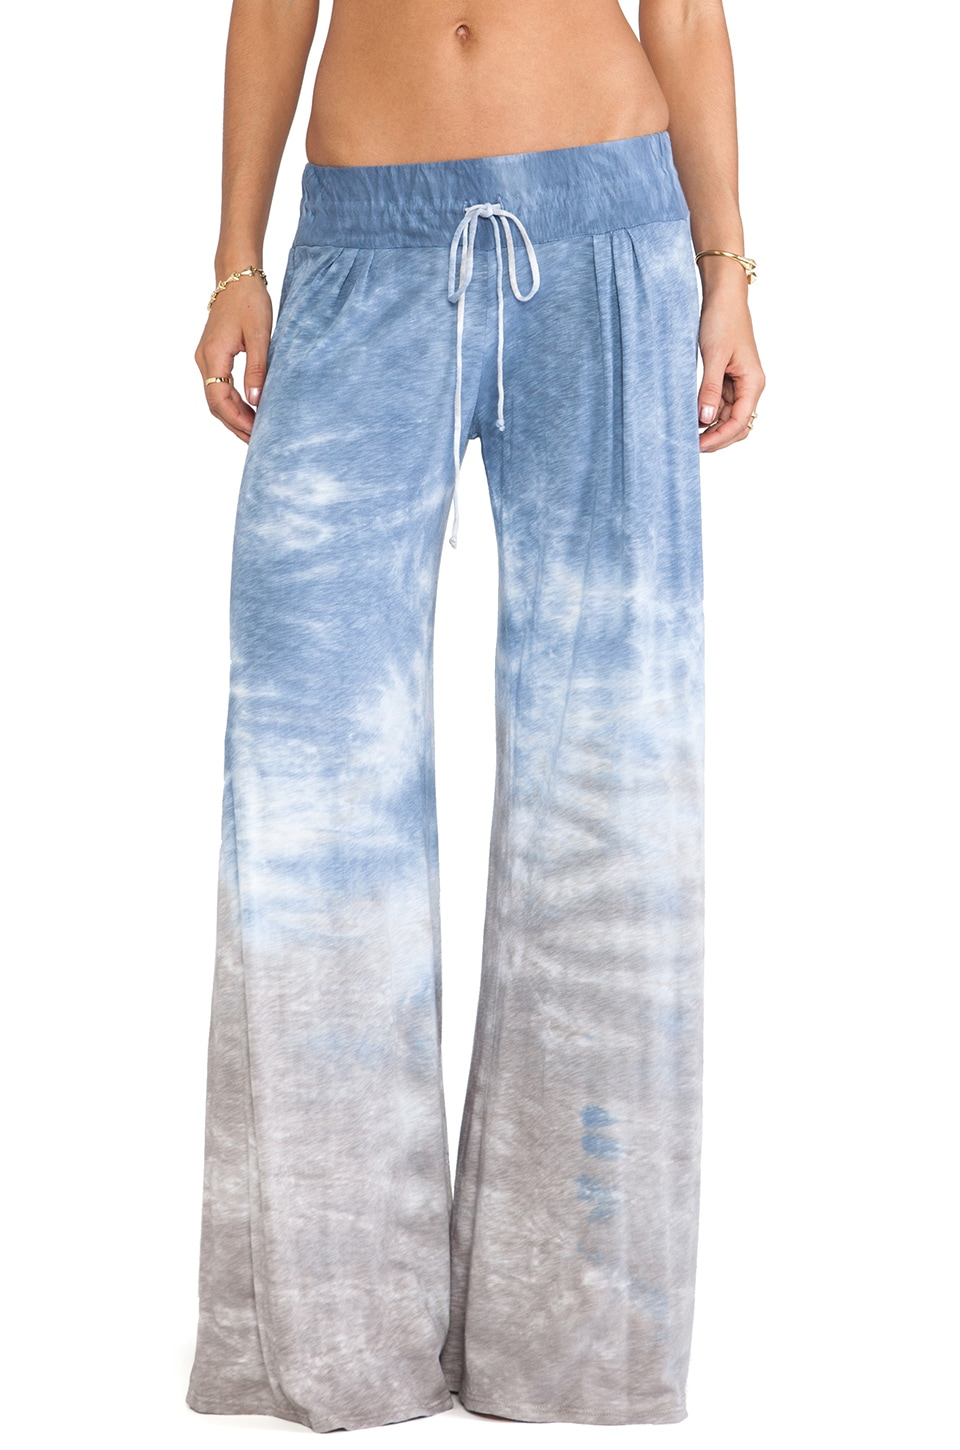 Blue Life New Moon Wide Leg Pant in Sky Tie Dye